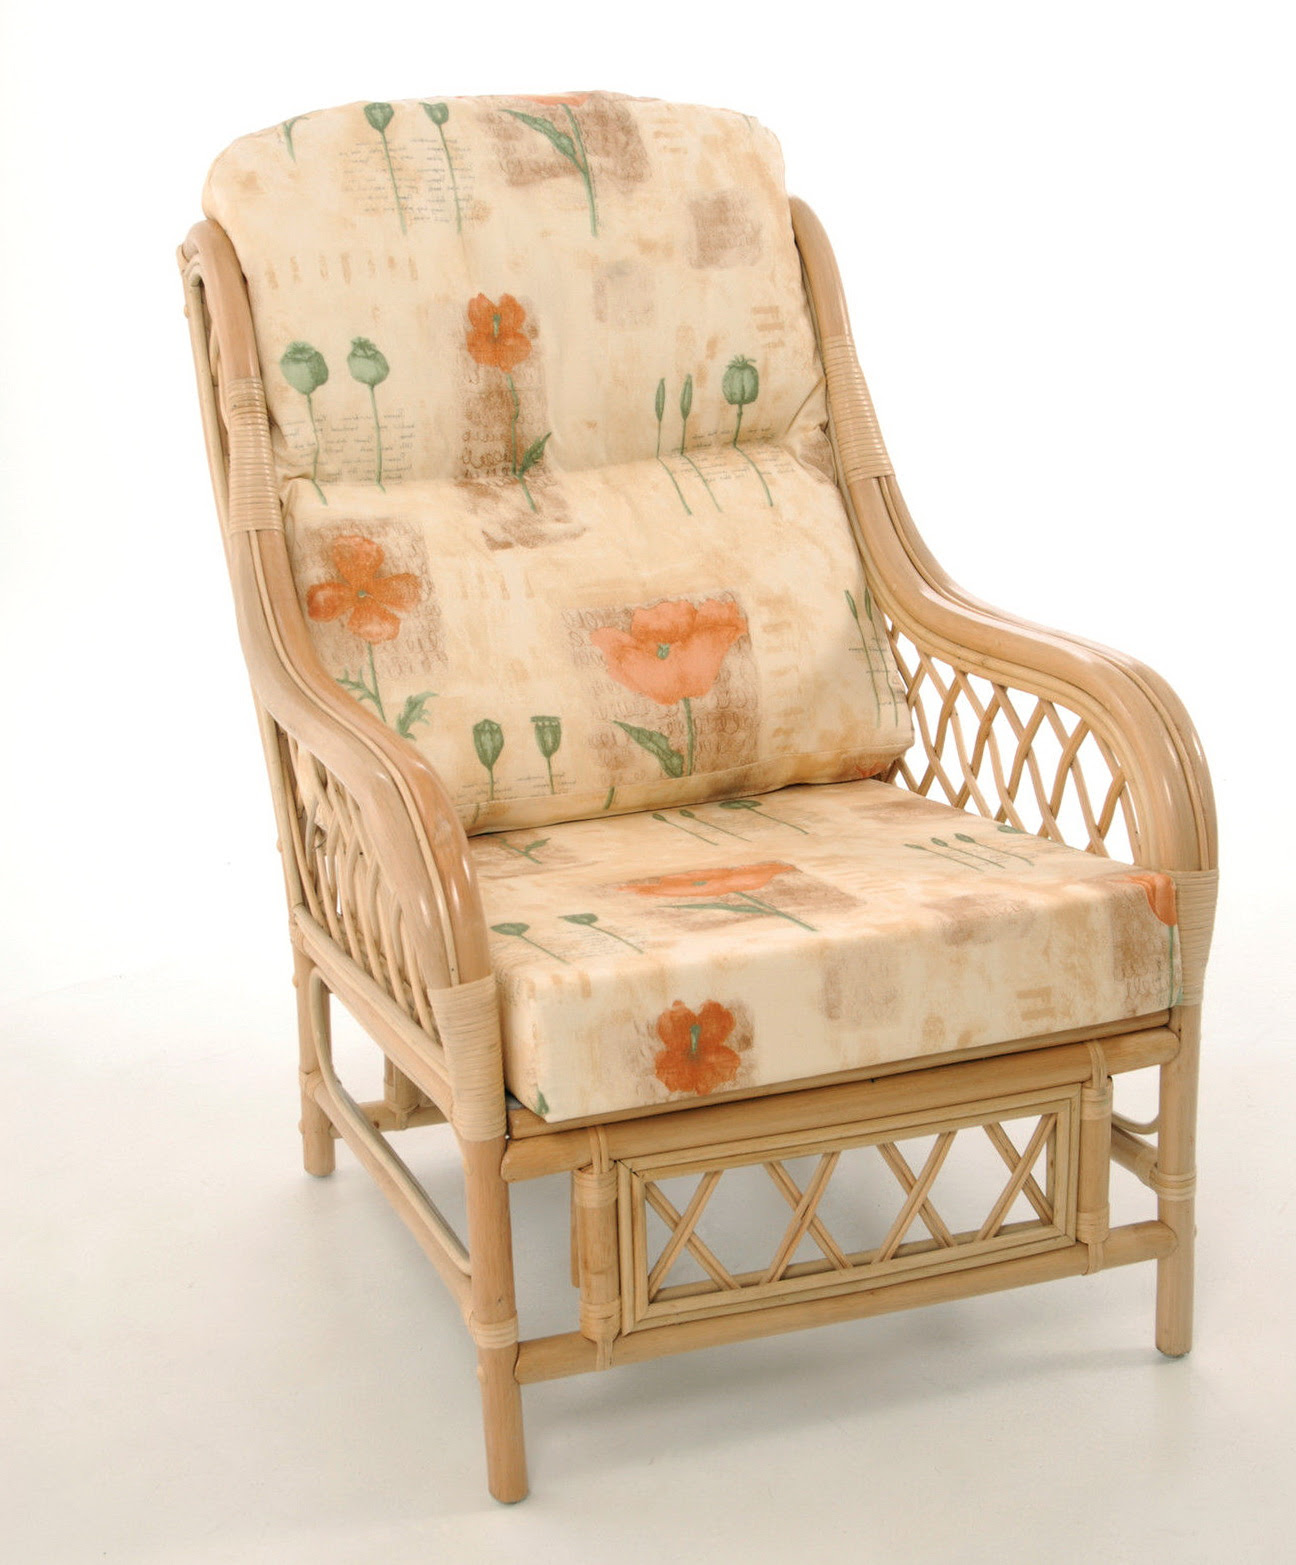 Replacement Cushions For Rattan Furniture Uk | Home Design ...